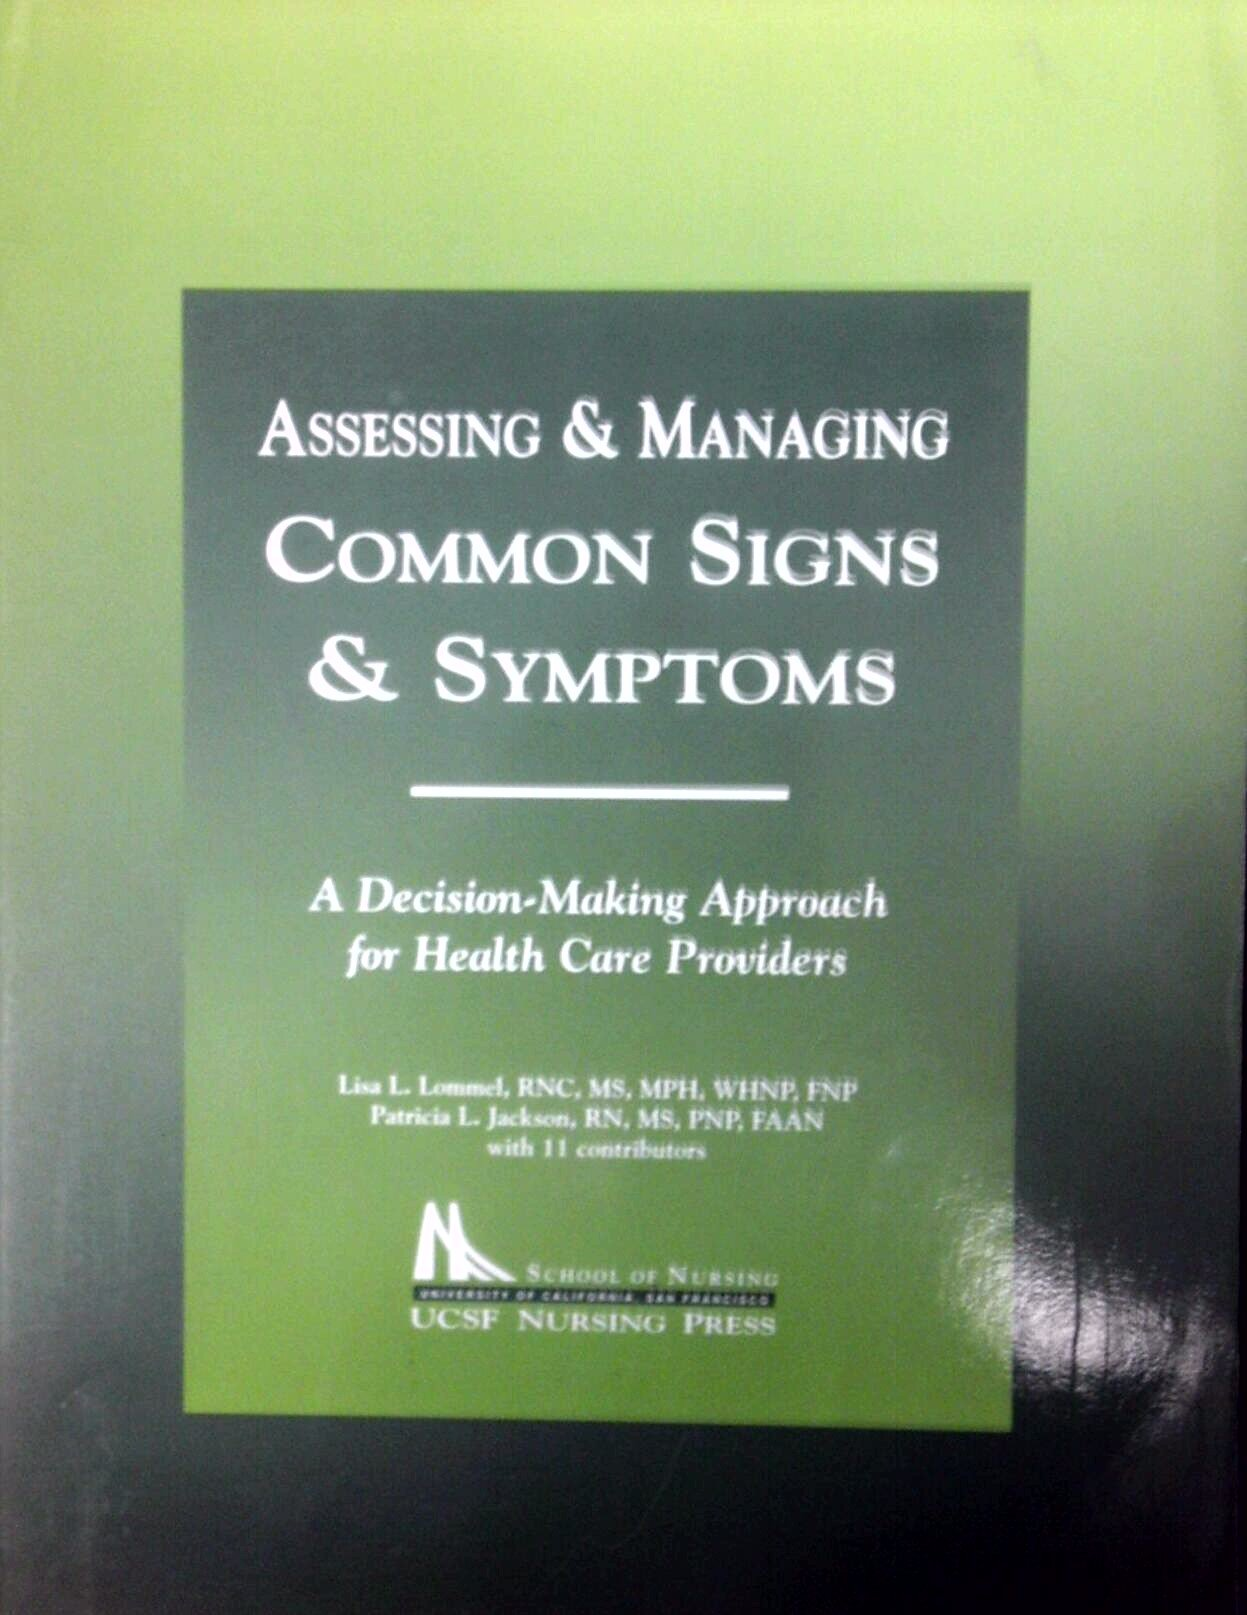 Assessing & Managing Common Sighns & Symptoms a Decision